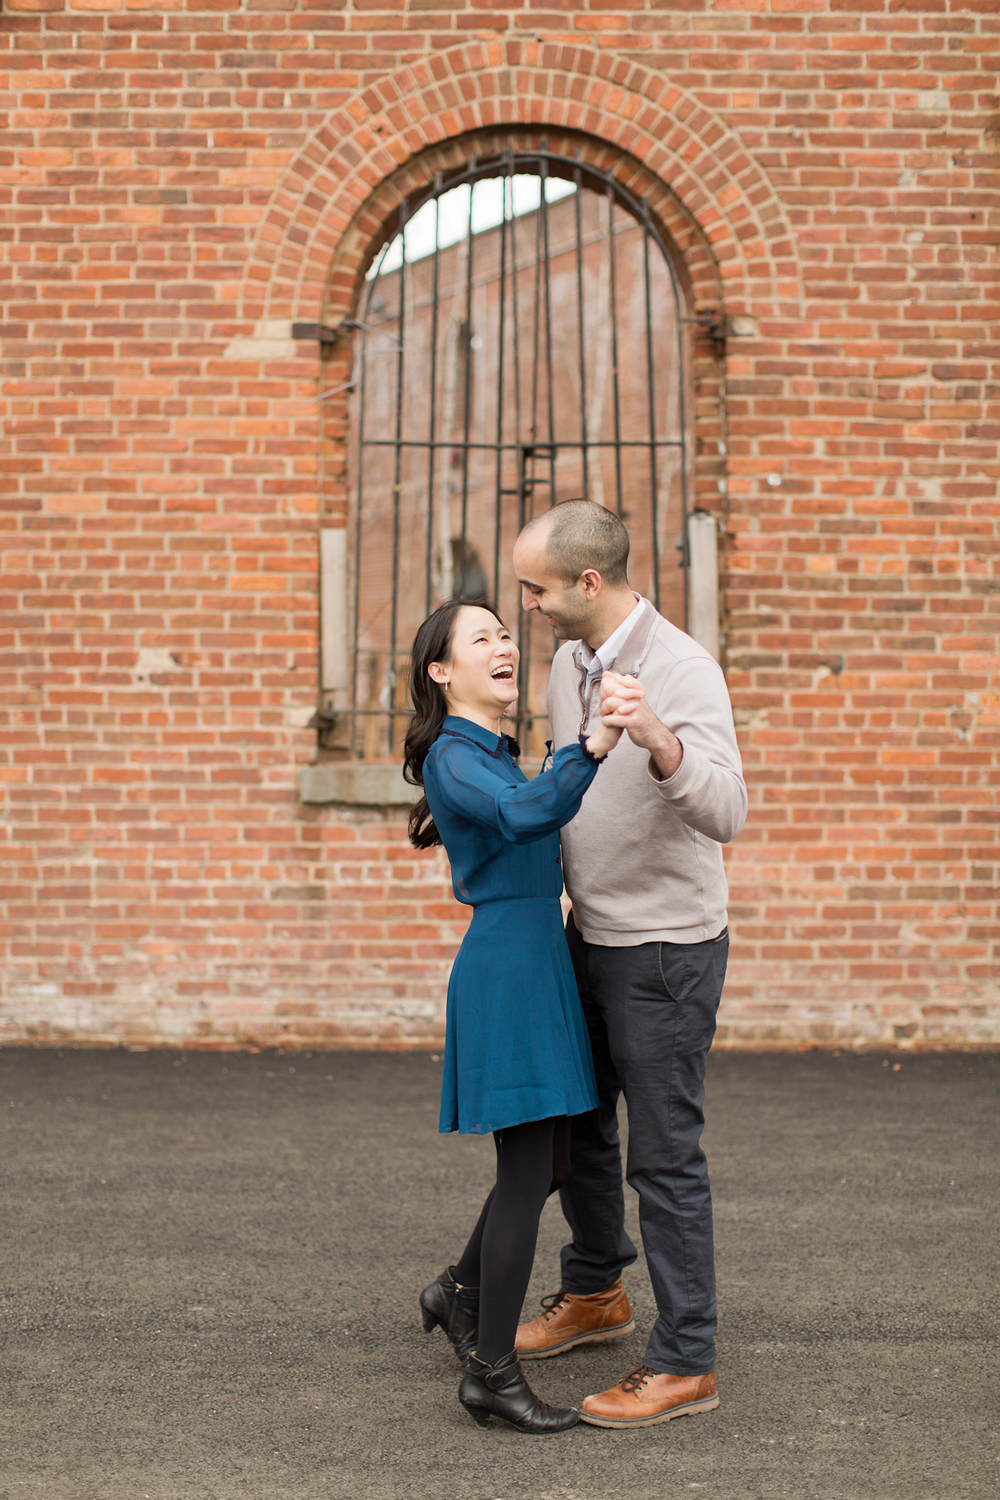 Melissa Kruse Photography - Kristine & David Engagement Photos-68.jpg